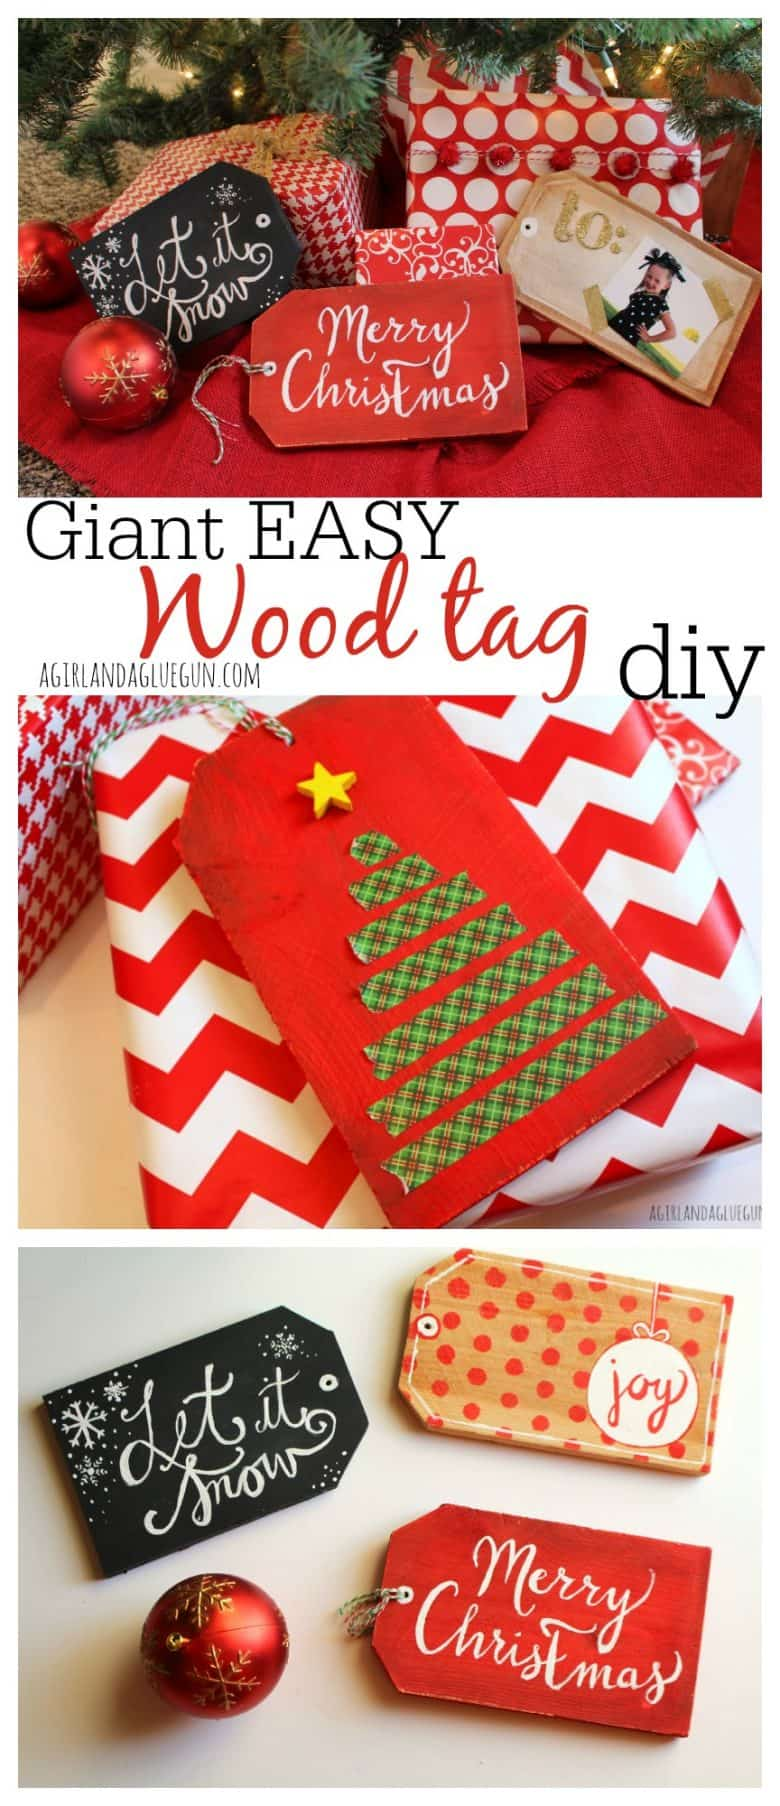 giant wood tag diy for christmas